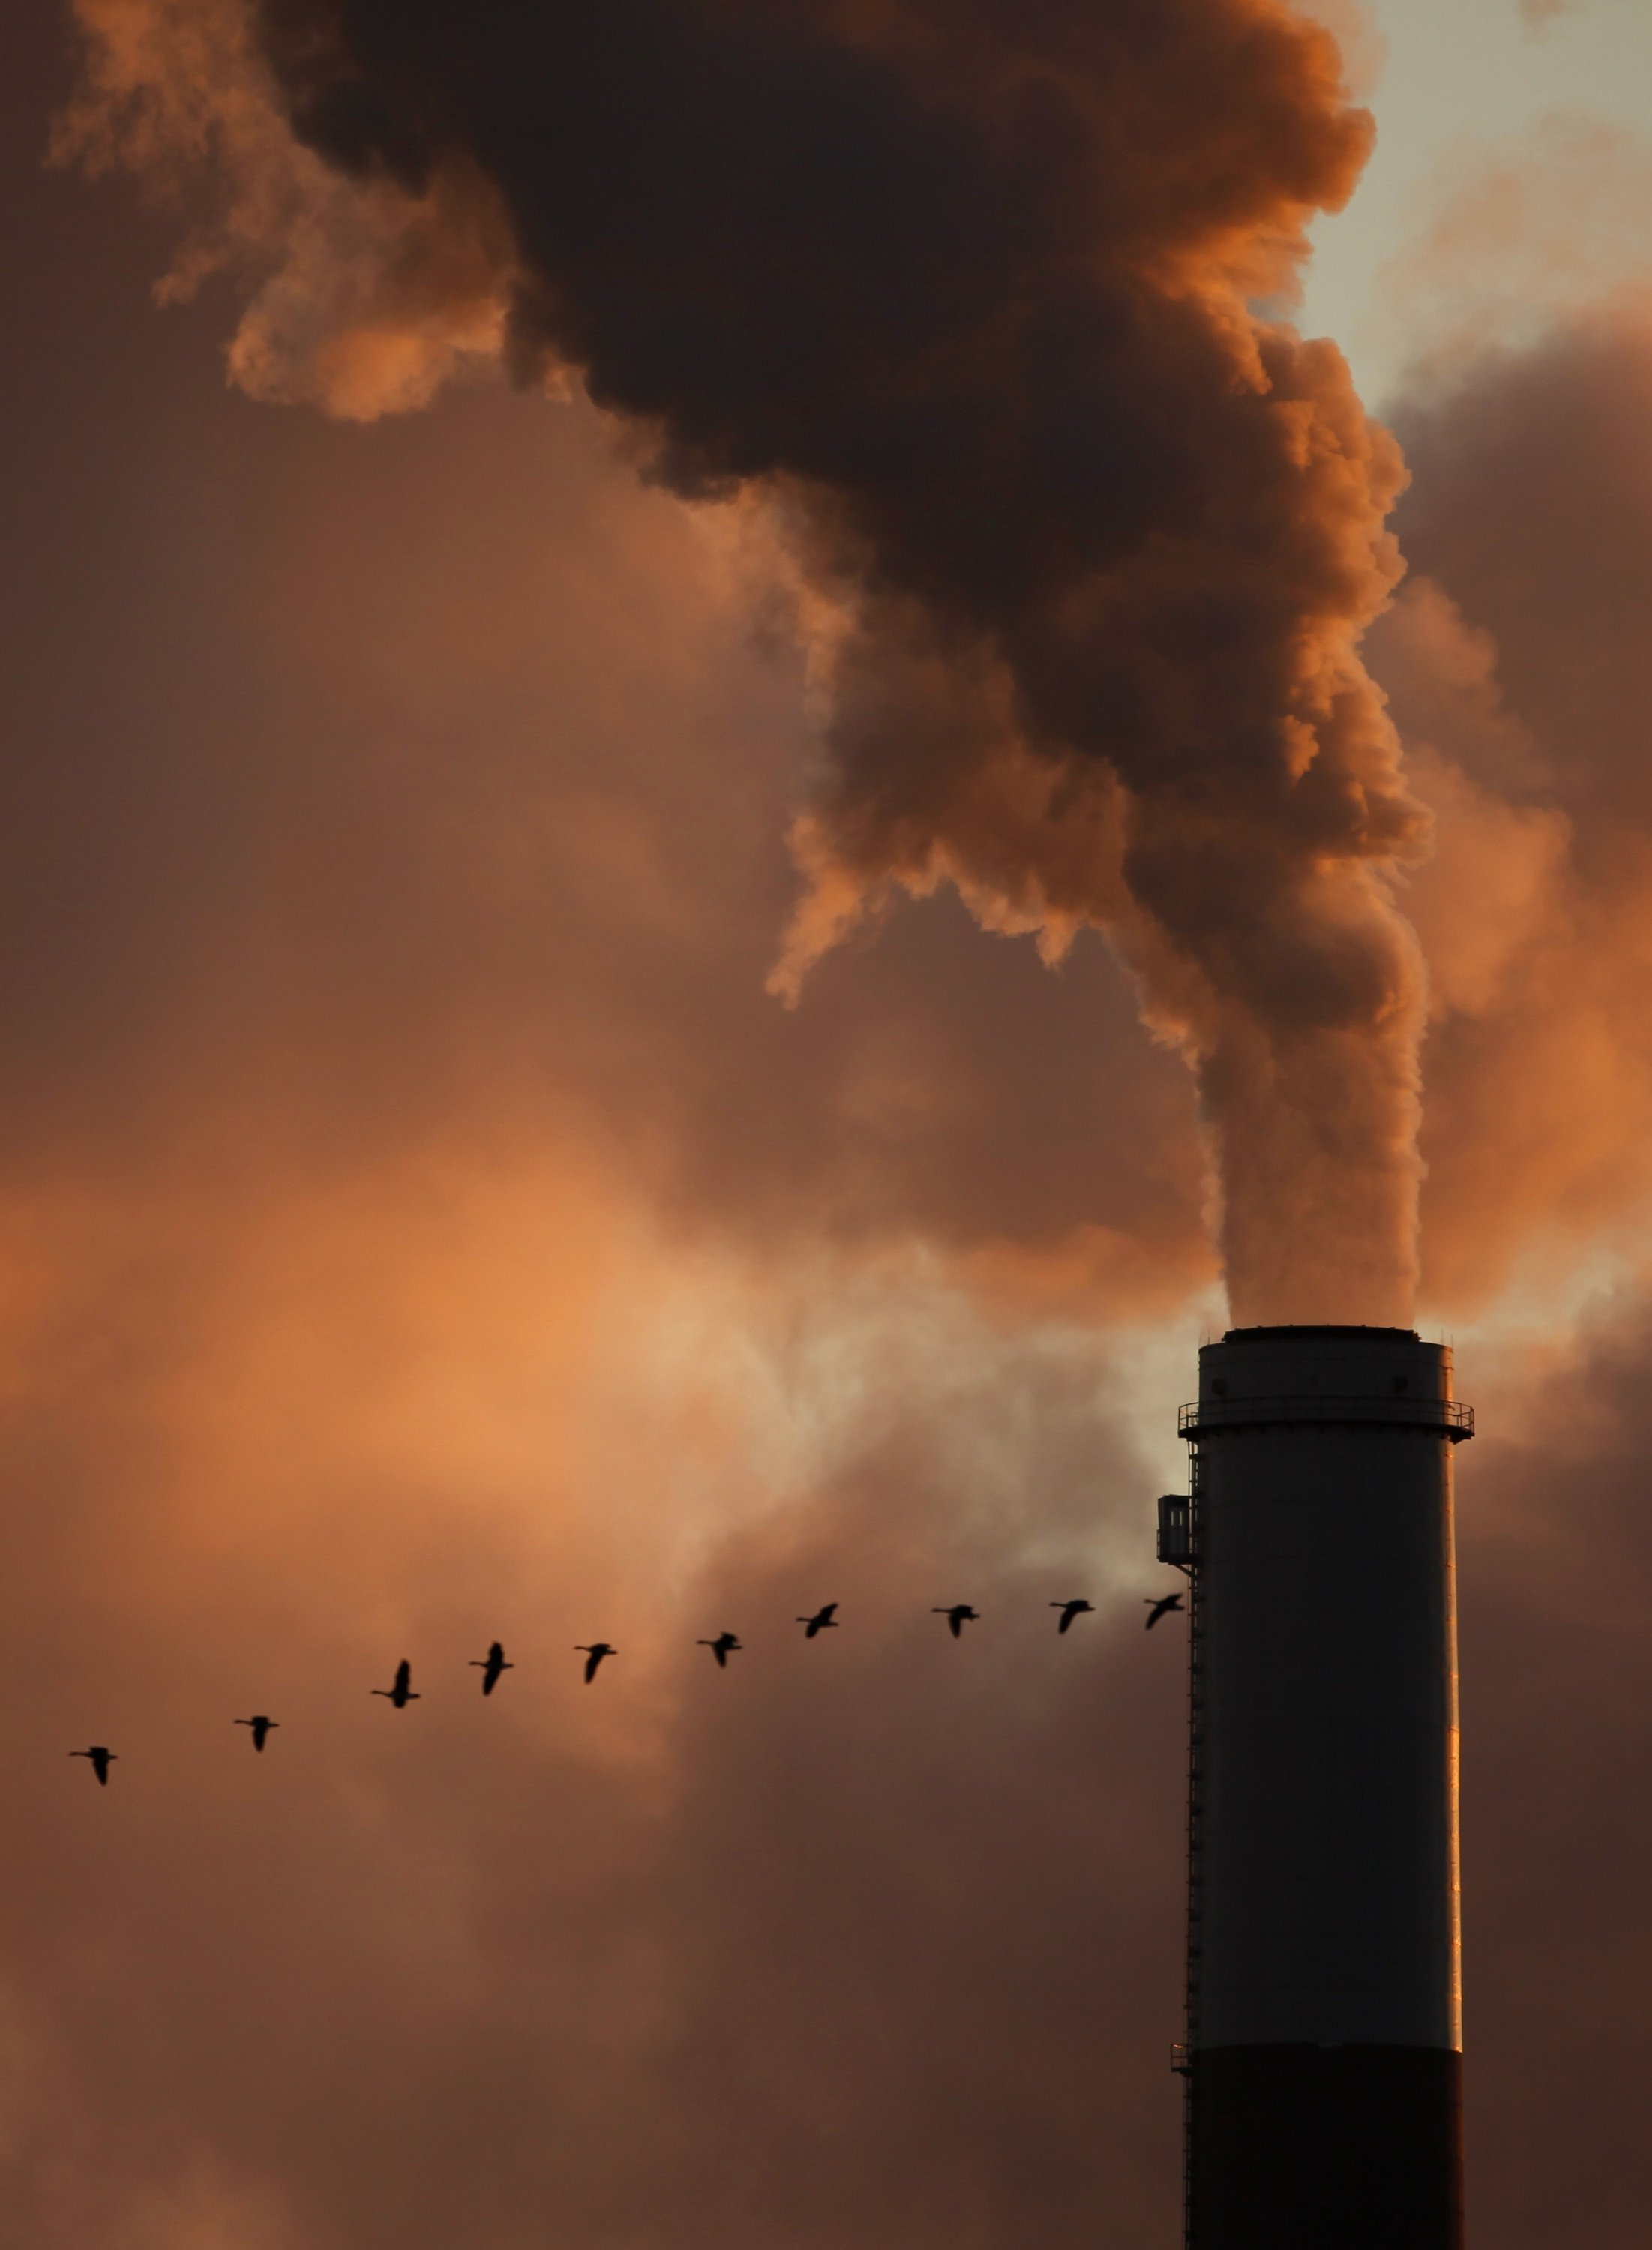 This Jan. 10, 2009, file photo shows a flock of geese flying past a smokestack at the Jeffrey Energy Center coal power plant near Emmitt, Kansas, U.S. (AP Photo)